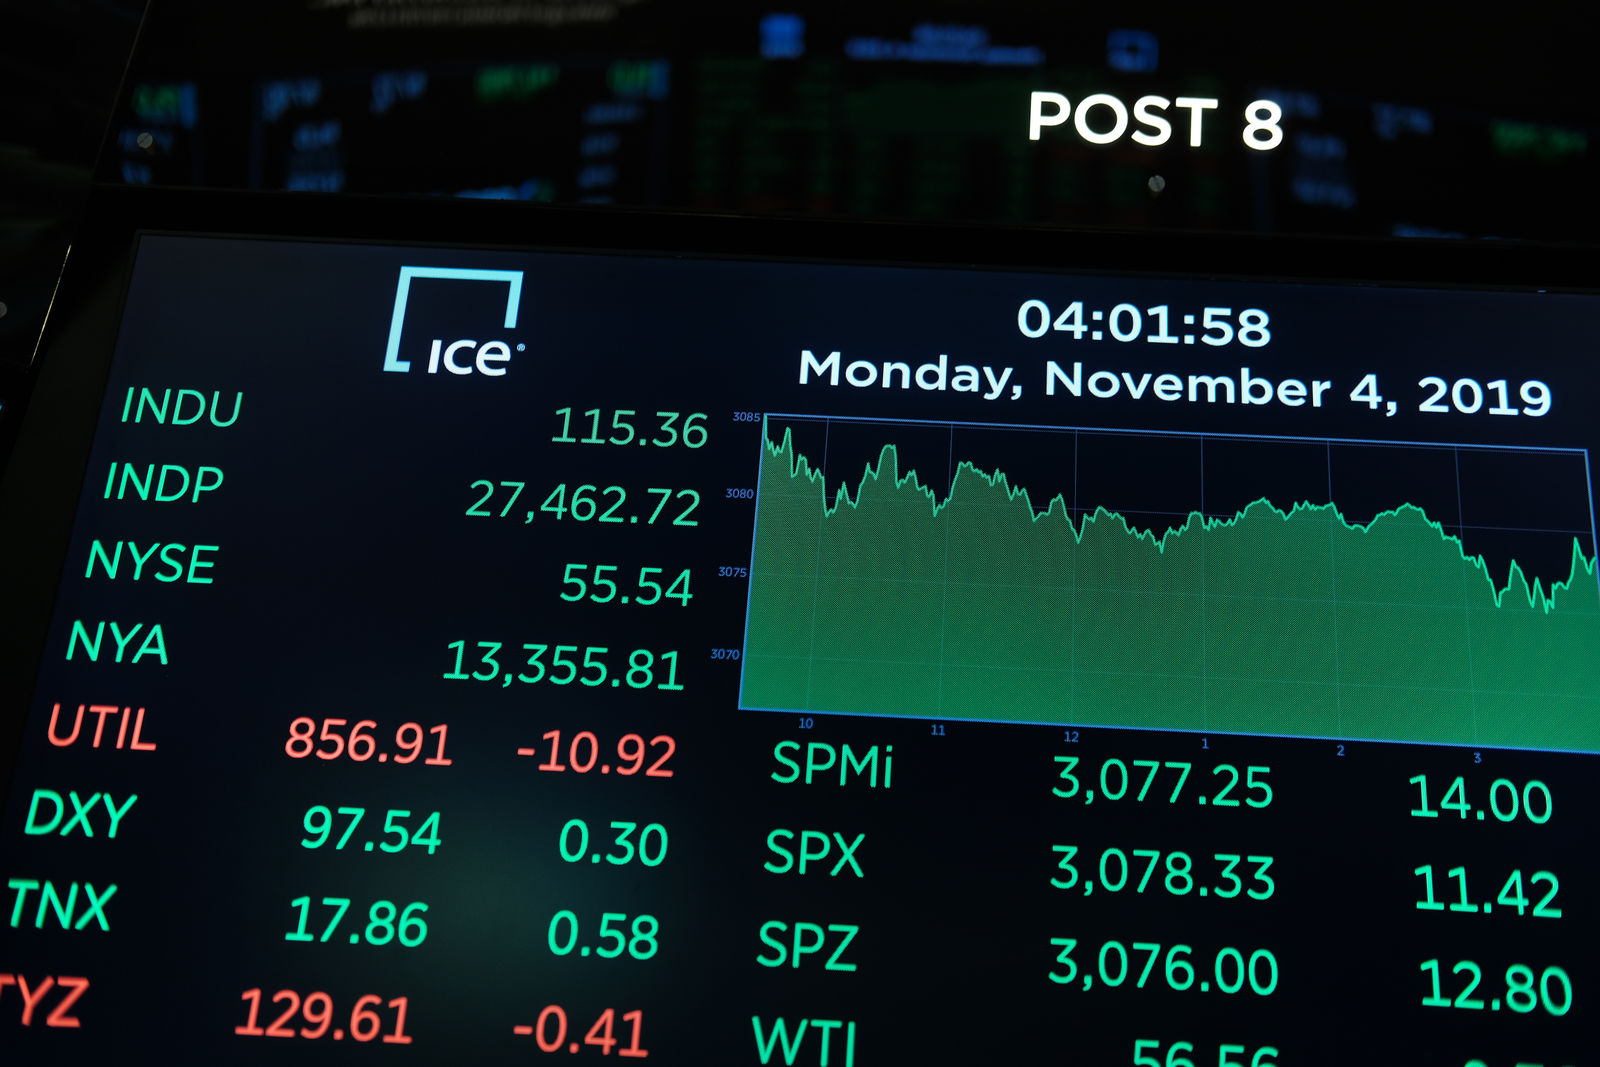 NEW YORK, NEW YORK - NOVEMBER 04: A monitor shows the closing numbers on the floor of the New York Stock Exchange (NYSE) on November 04, 2019 in New York City. U.S. stocks finished at records highs on Monday with the Dow Jones Industrial Average rising 114 points to close at a record high.  (Photo by Spencer Platt/Getty Images)